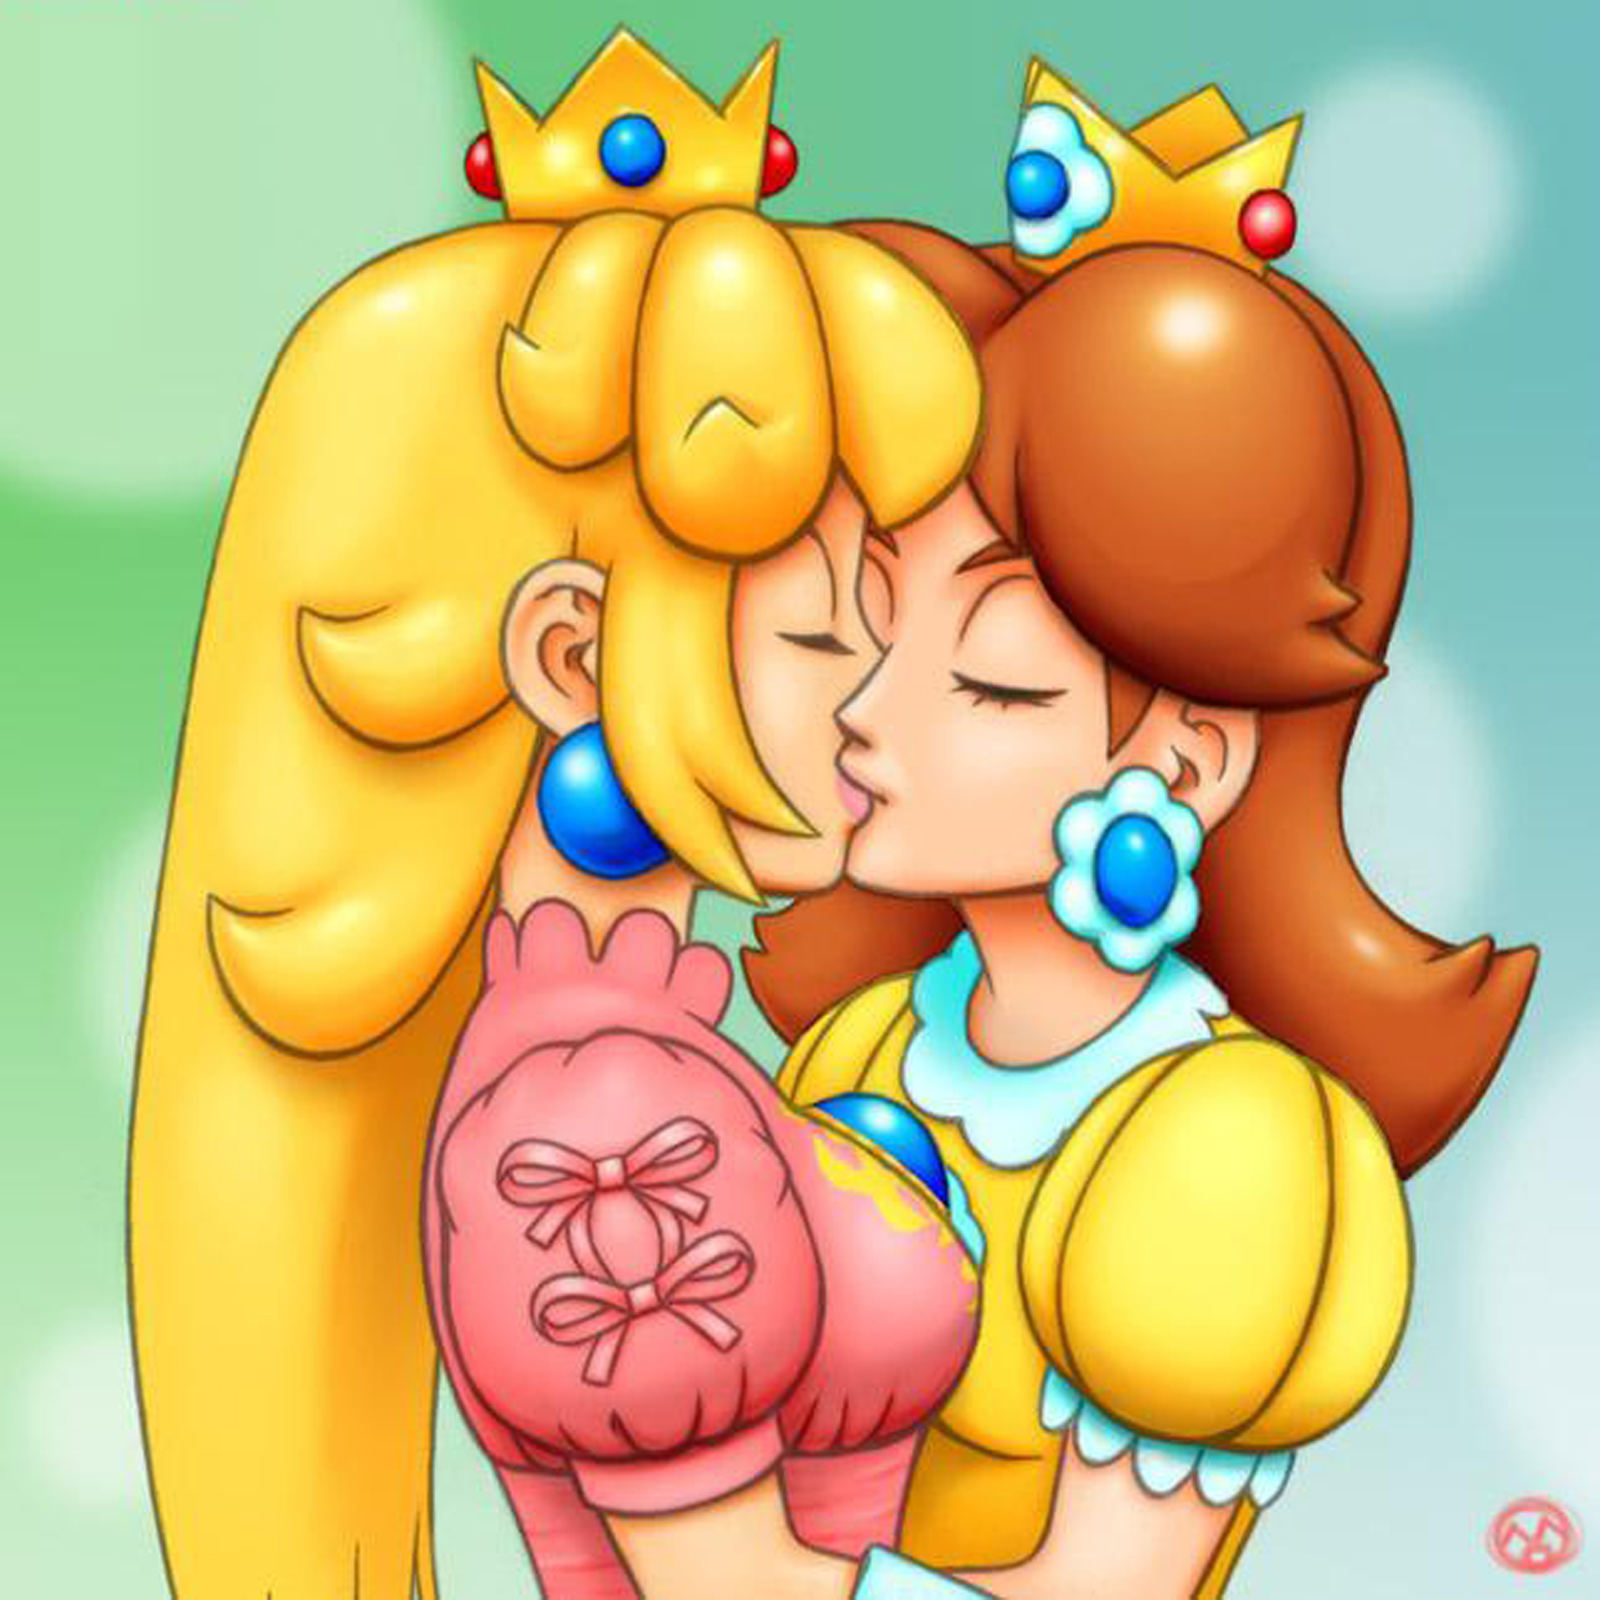 Princess peach and princess daisy